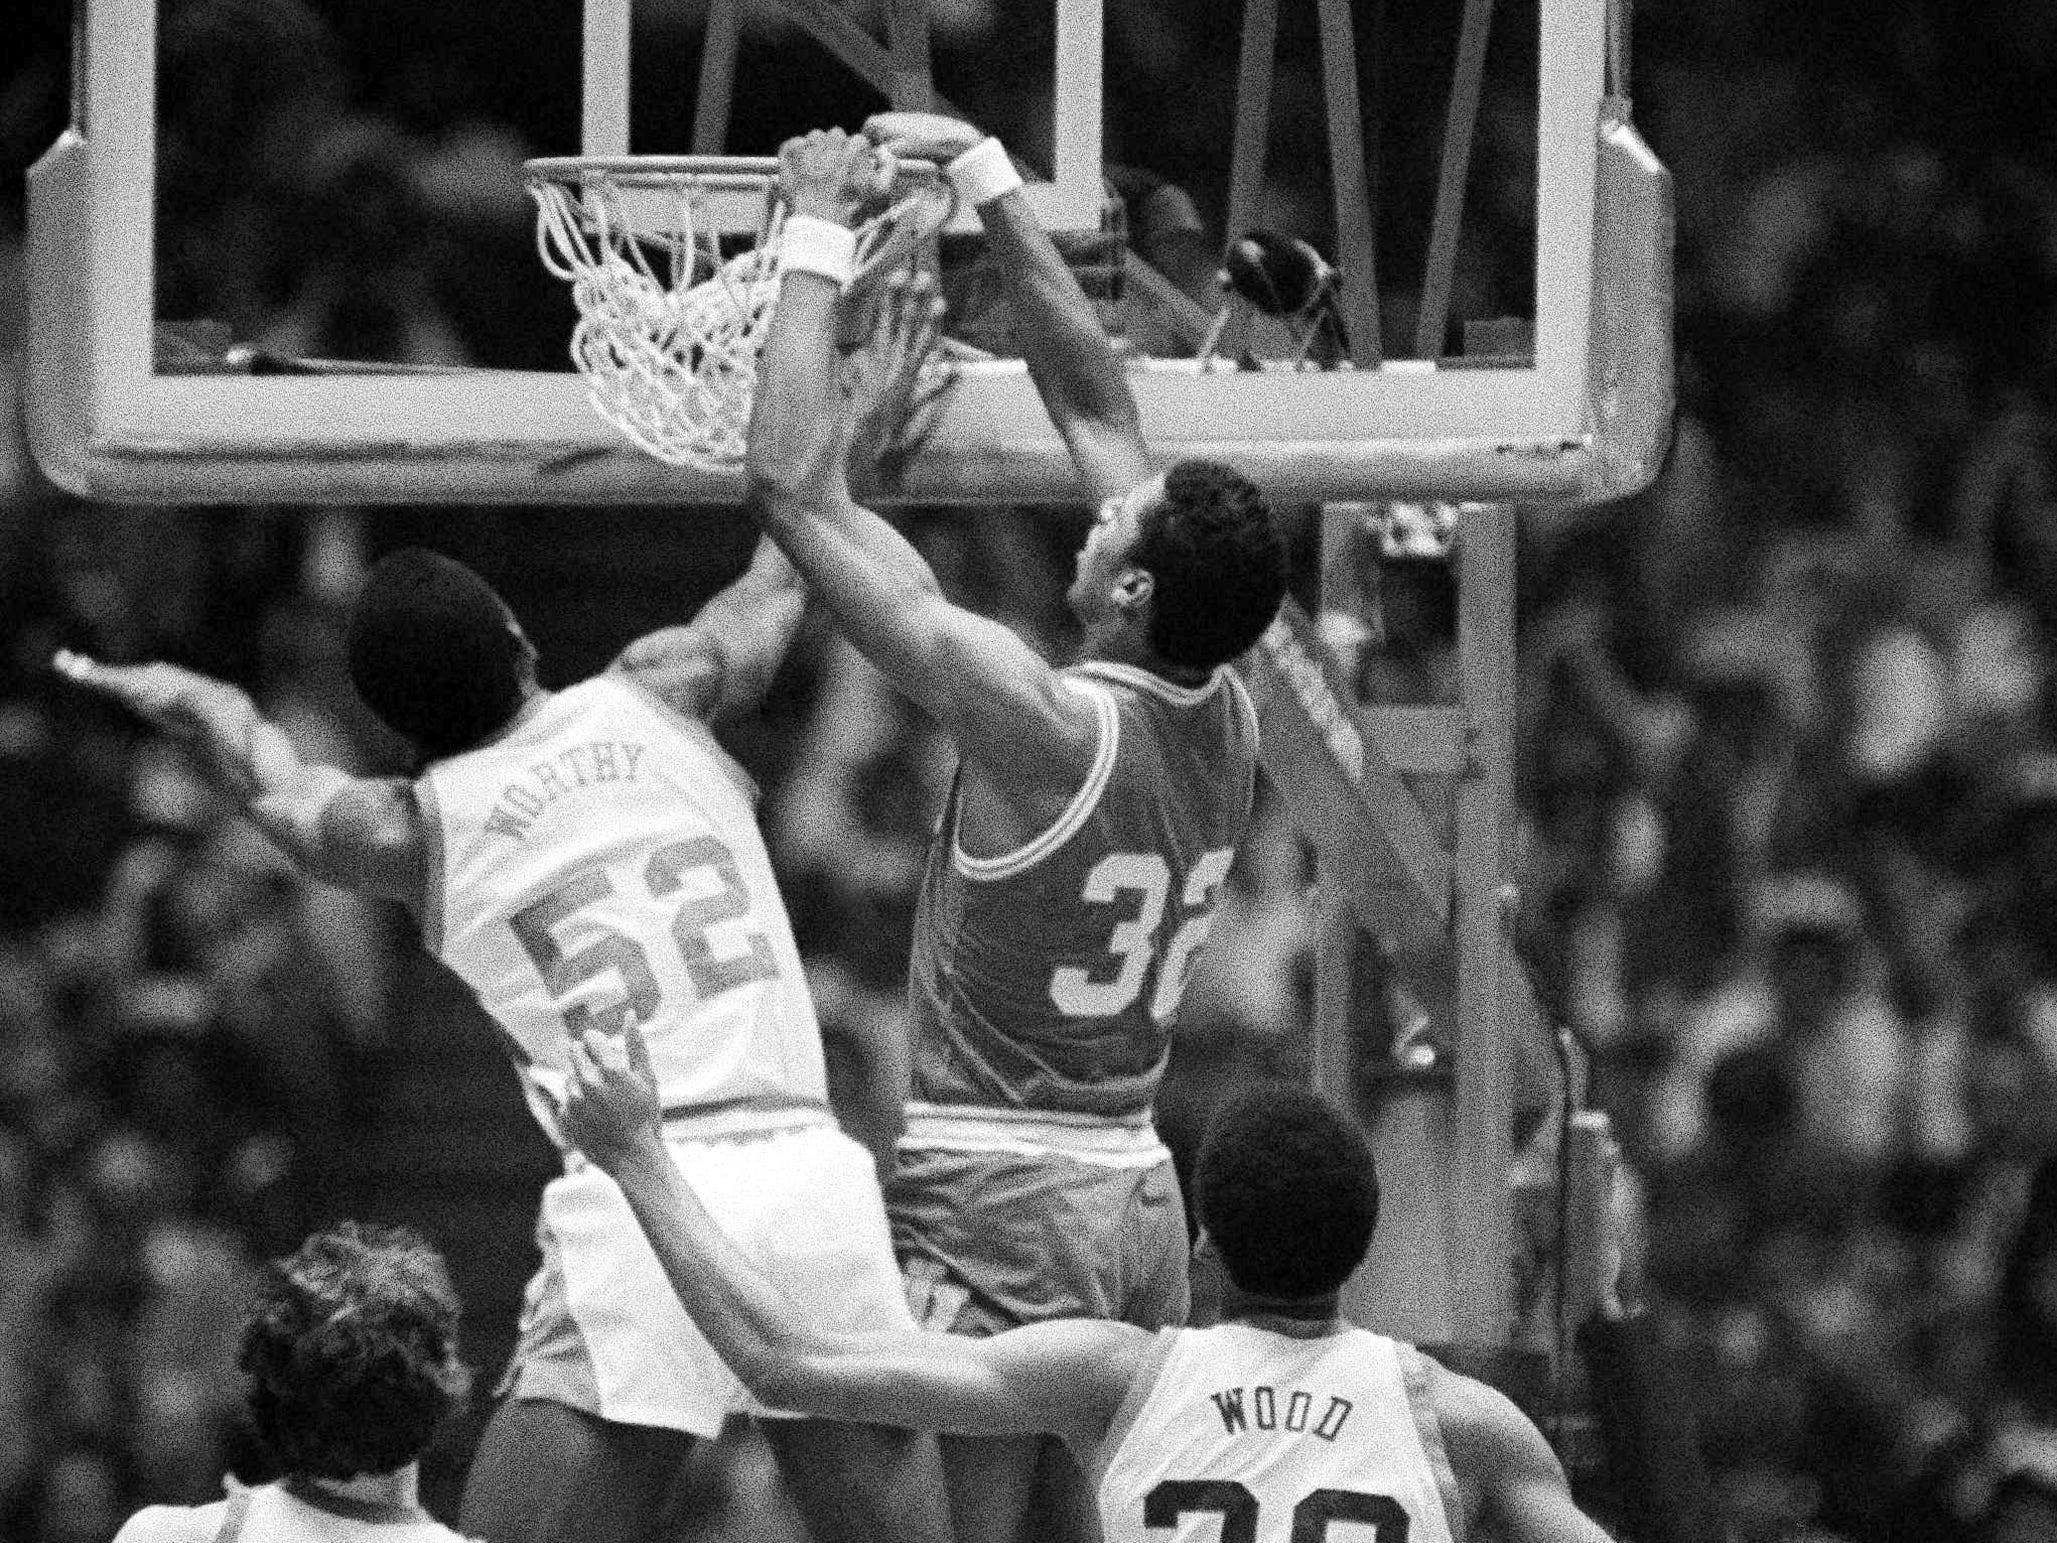 Indiana's Landon Turner (32), hangs onto rim while dunking ball at the NCAA playoff in Philadelphia on Monday, March 30, 1981. In on the play are James Worthy, left and Al Wood. A technical foul was called on the play.